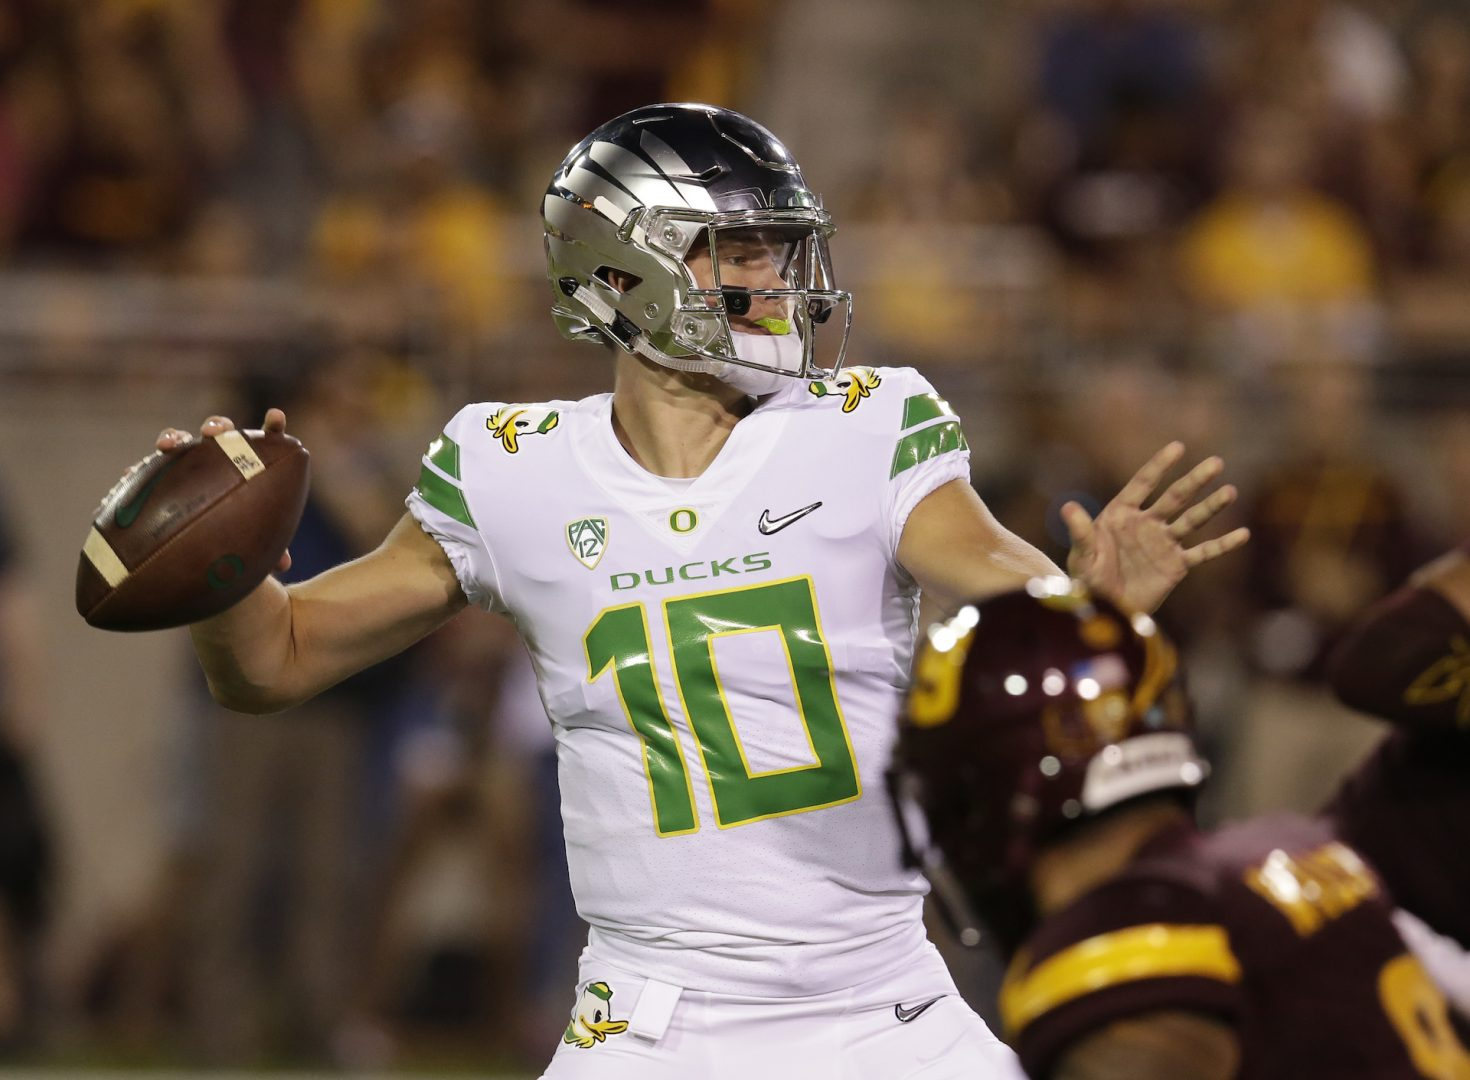 Best Qb In 2021 Draft Early Look At The Top 2020 And 2021 NFL Draft Quarterback